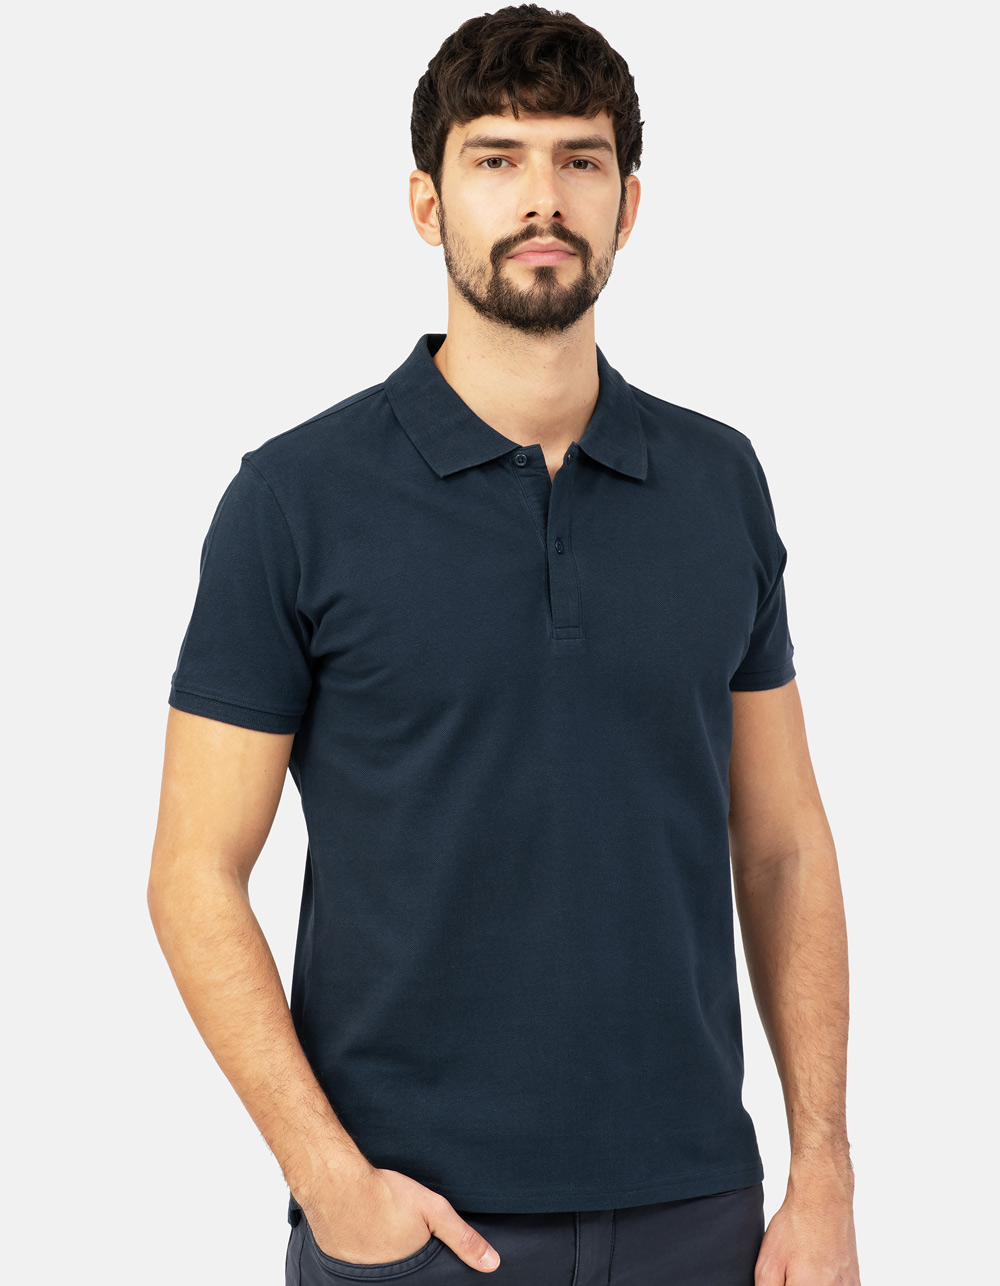 Navy blue basic piqué polo shirt